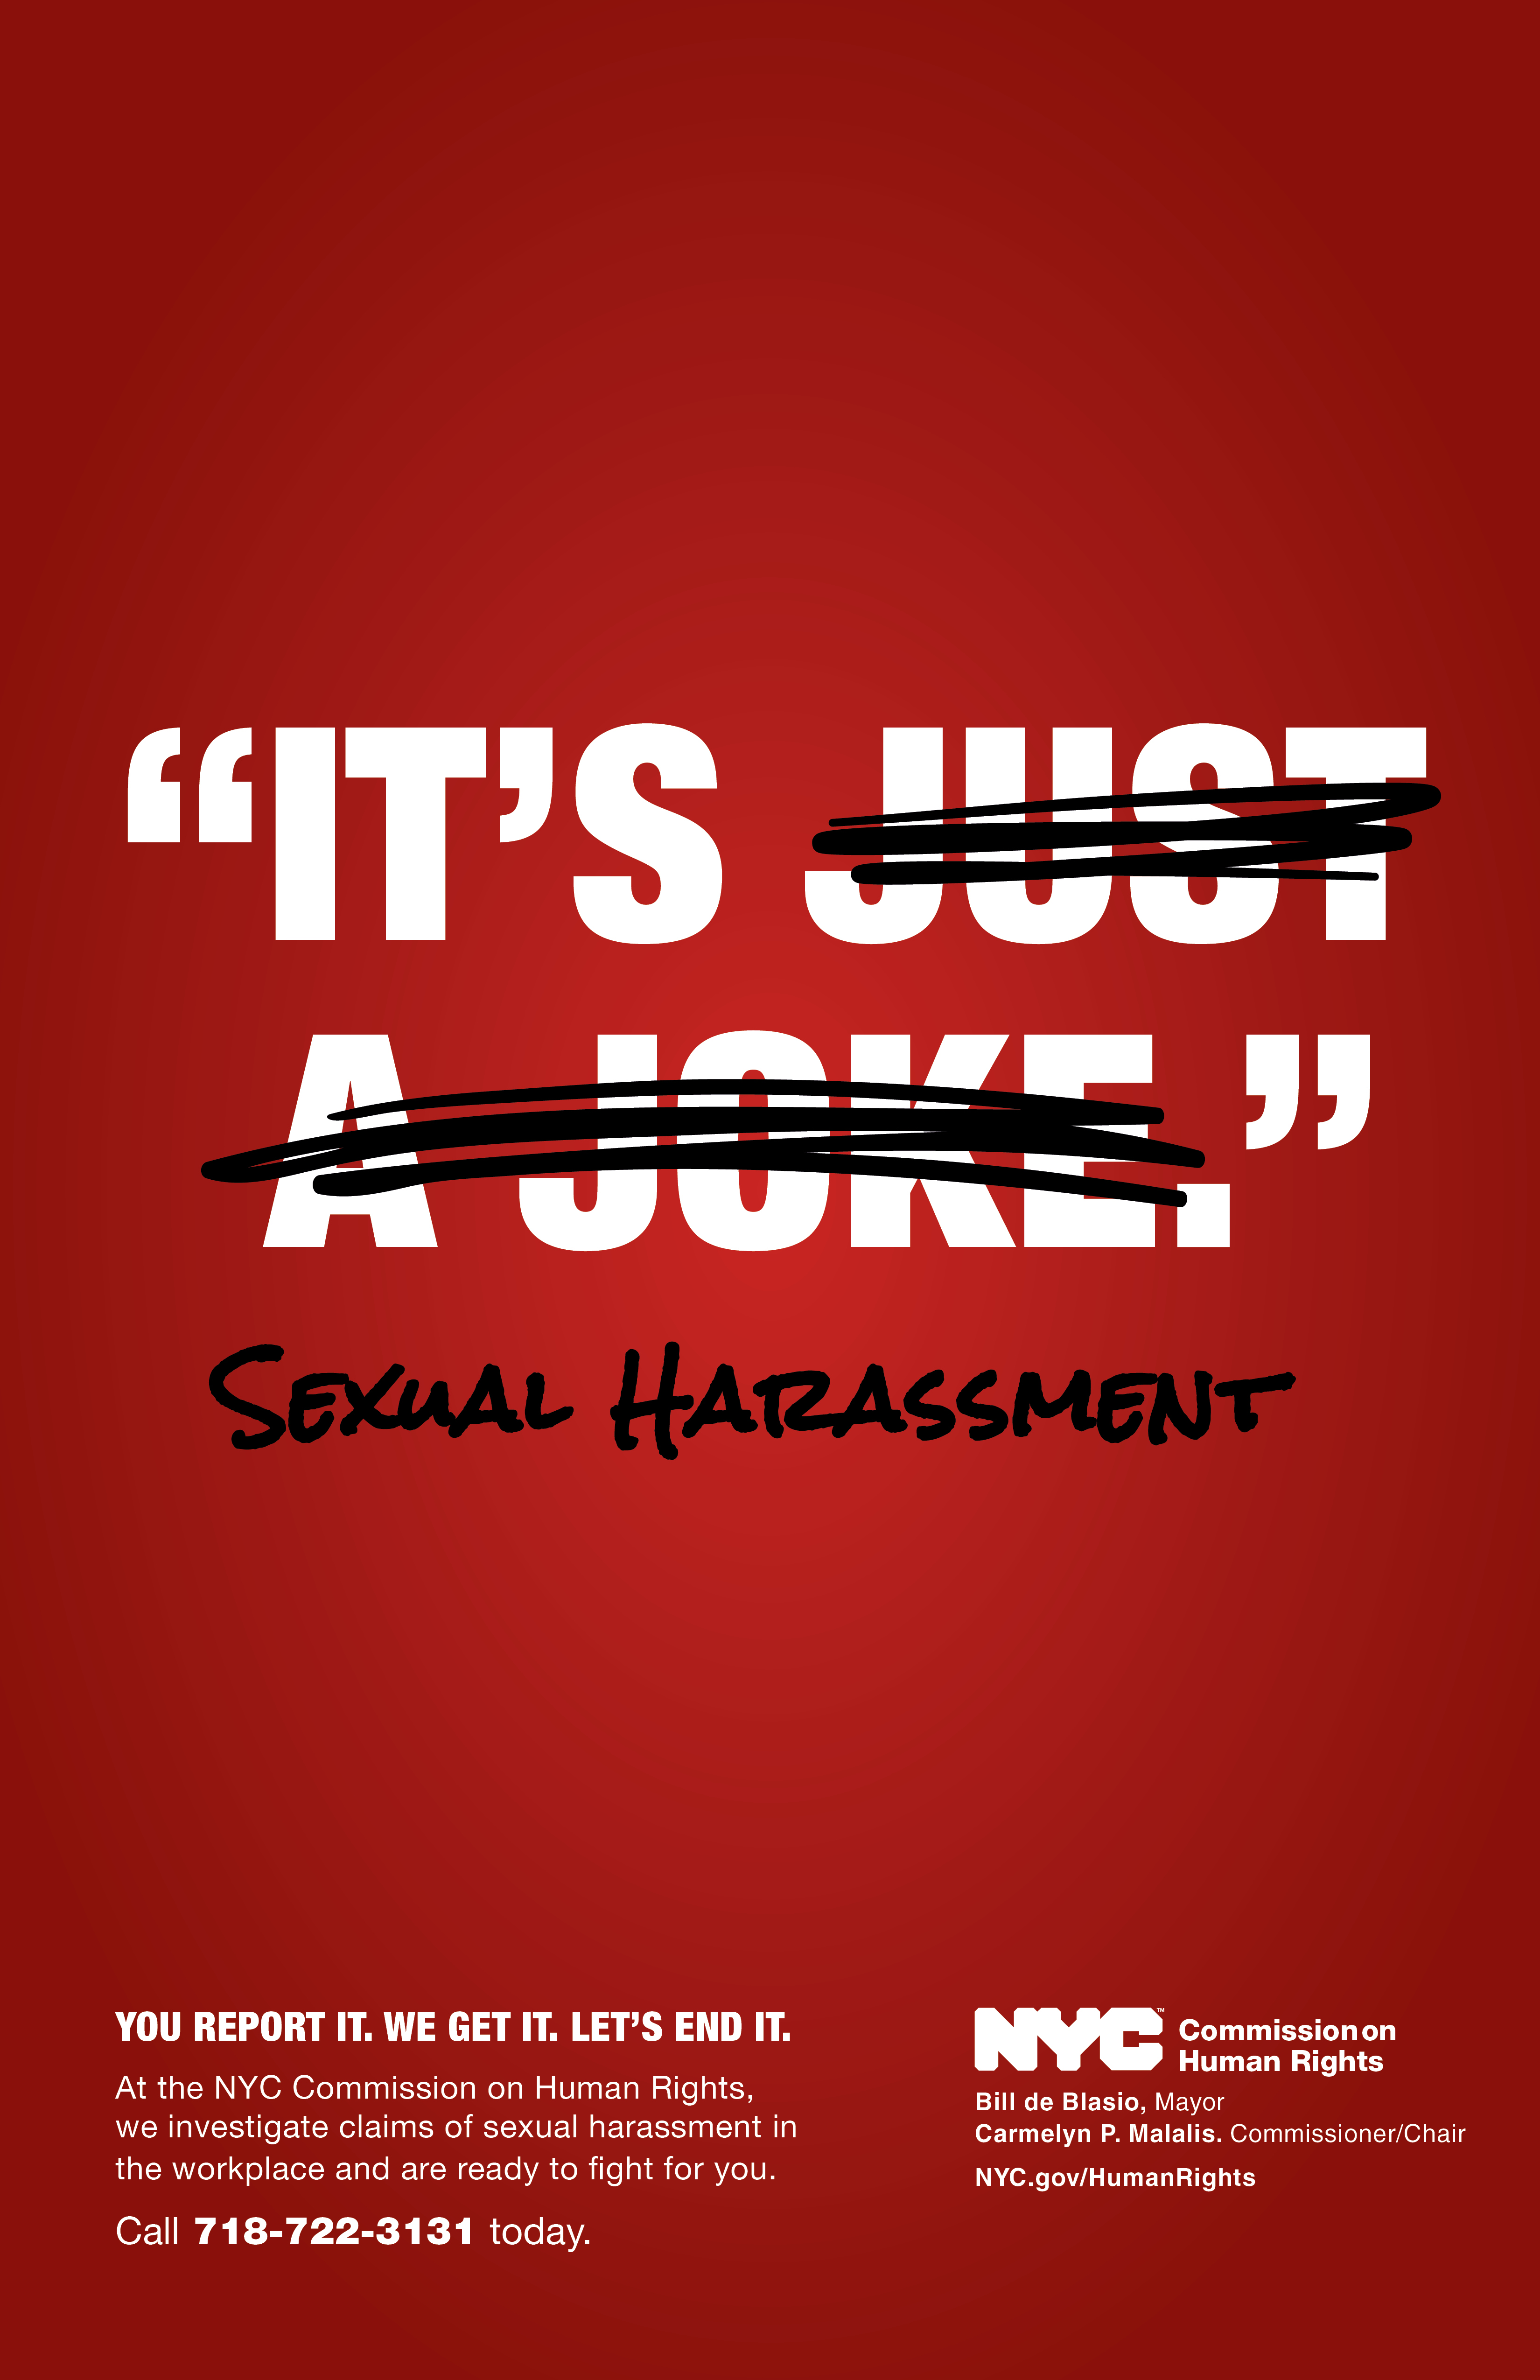 Lets have sexual harassment